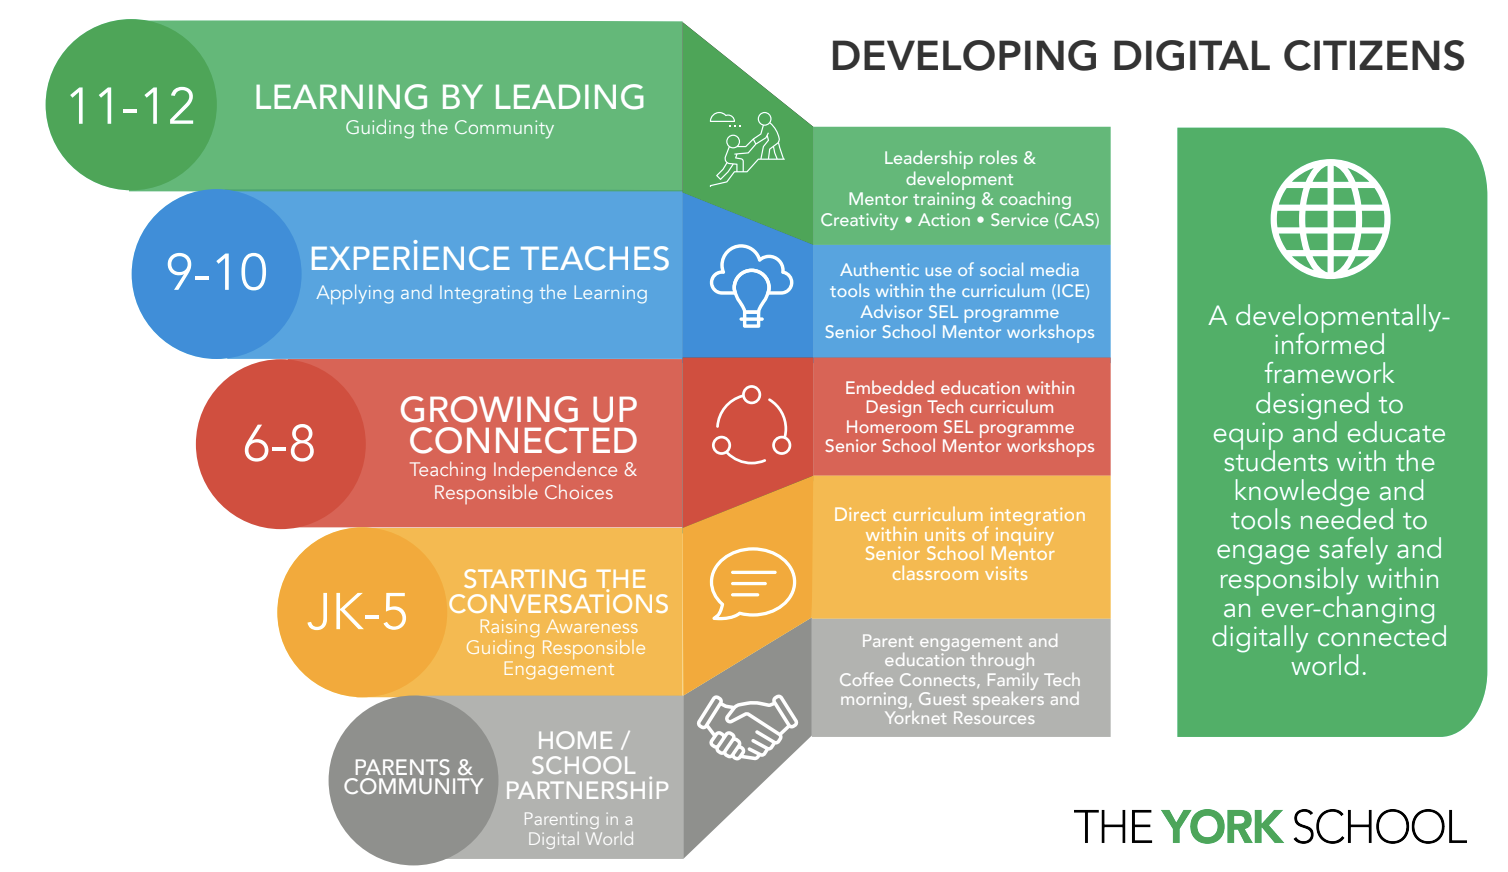 The York School process to Developing Digital Citizens